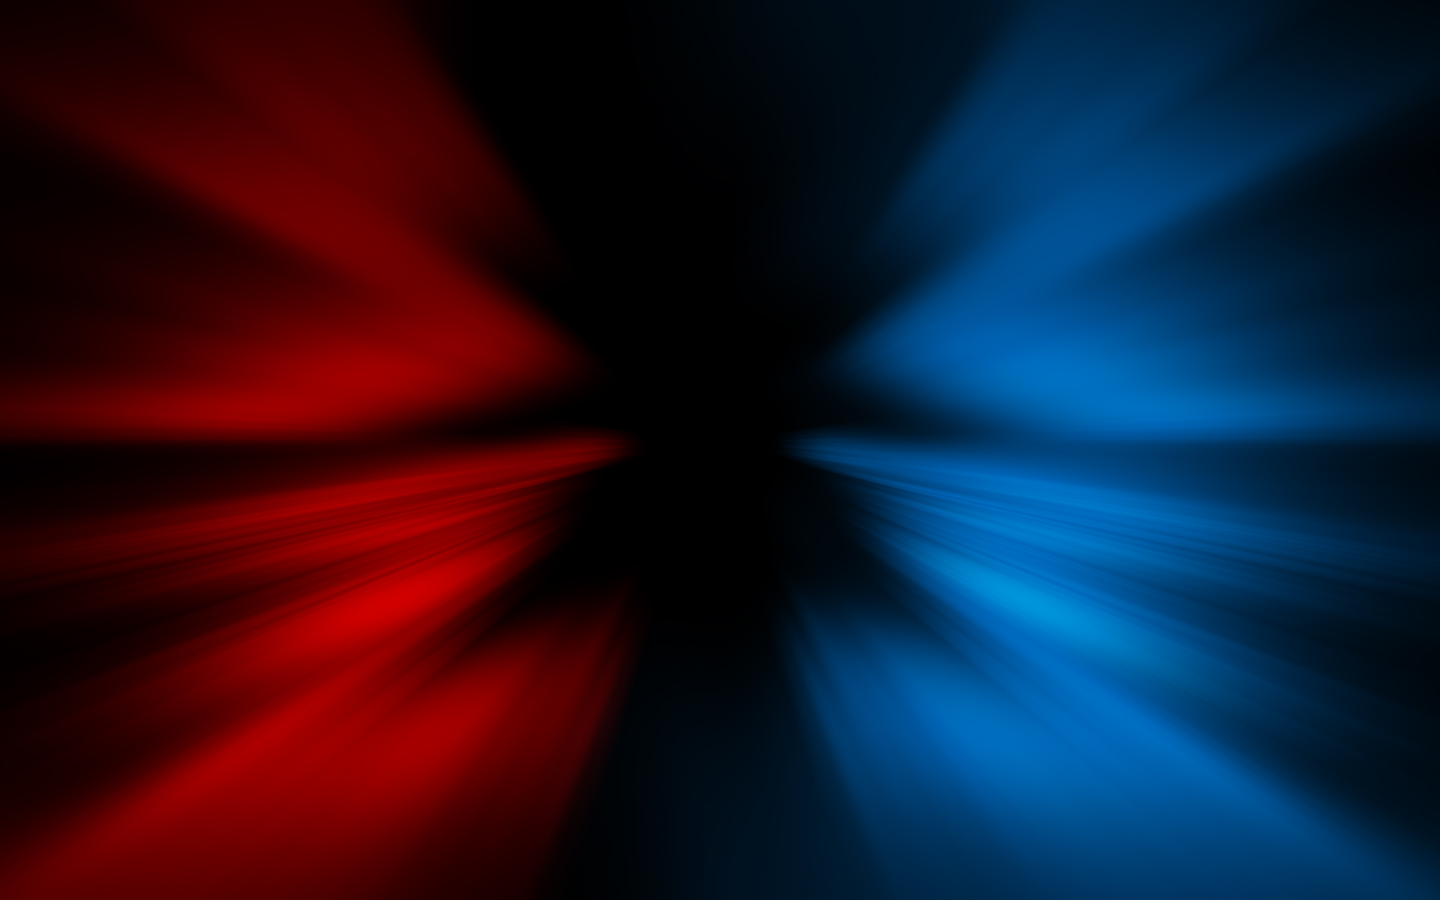 Red White And Blue Backgrounds - WallpaperSafari - photo#39